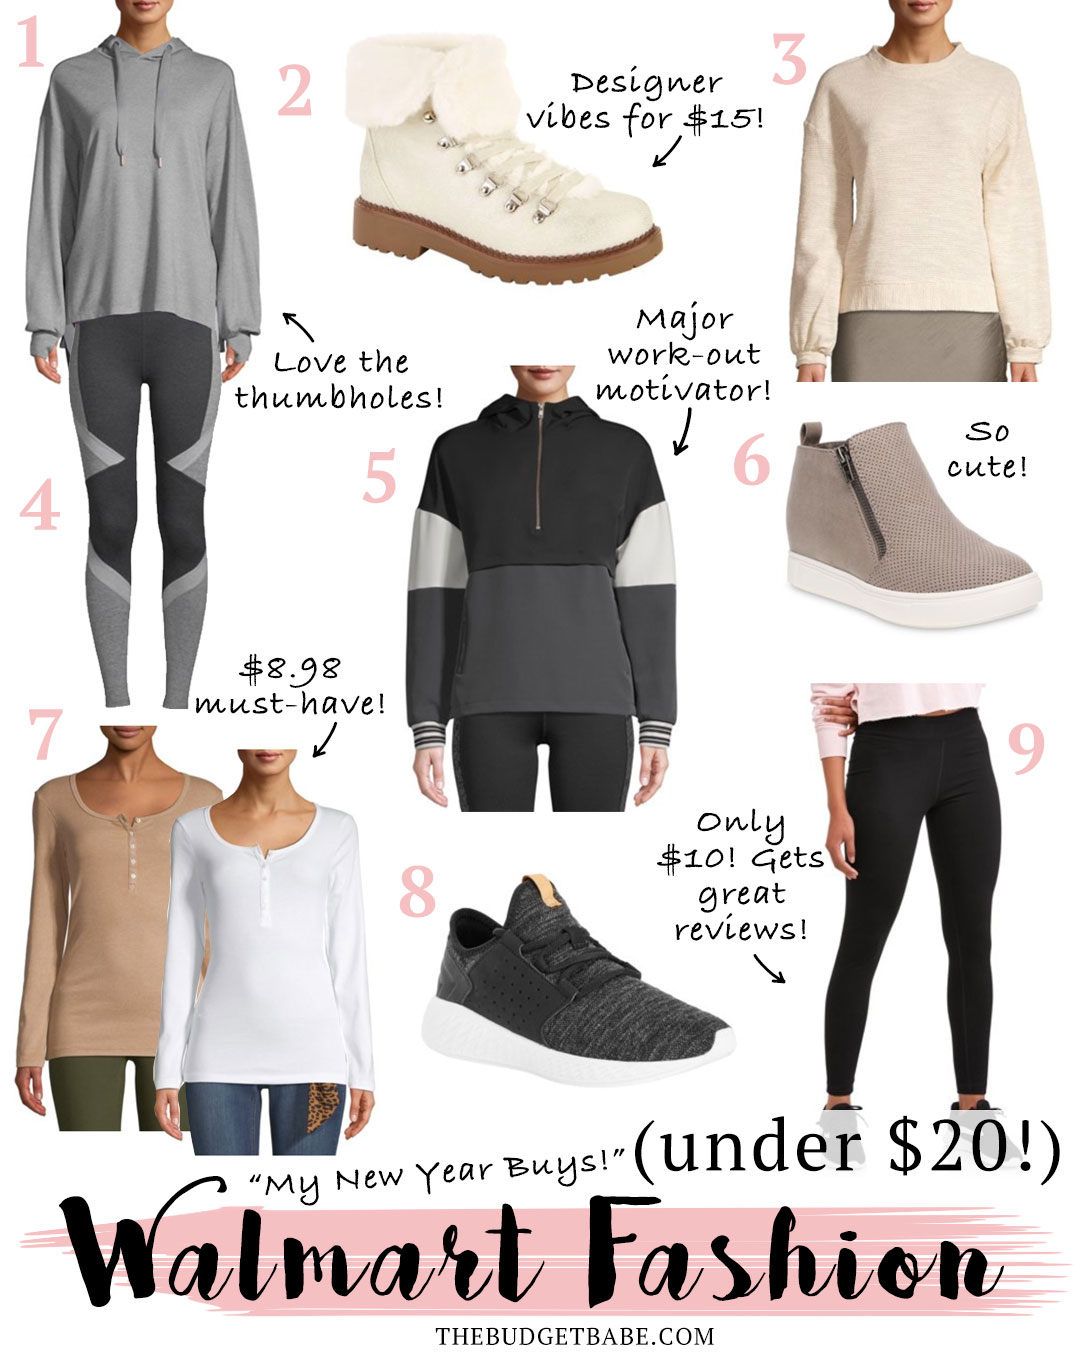 Walmart Fashion finds under $20! Workout gear, athleisure, cozy casual styles